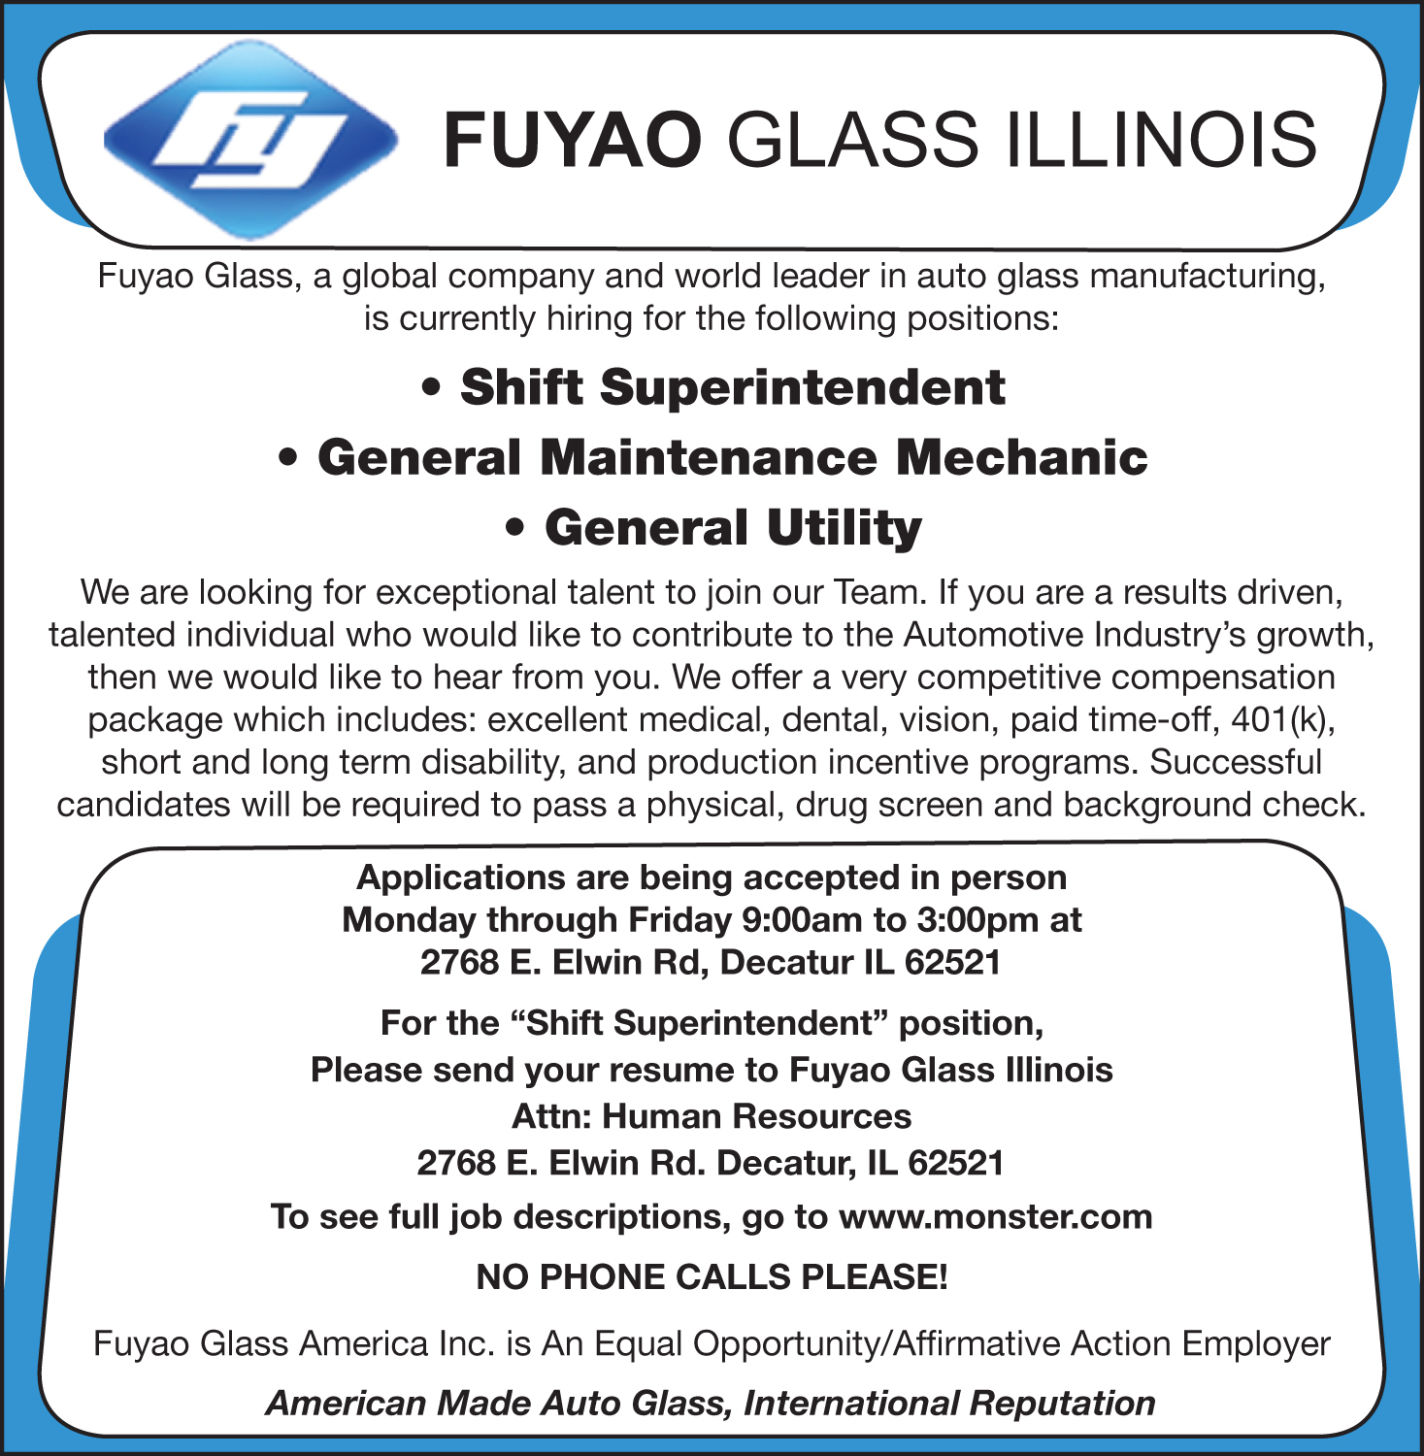 Company with Charleston, IL jobs Progress Rail For more information, visit 10mins.ml and follow @Progress_Rail on Twitter, YouTube, LinkedIn and Facebook.